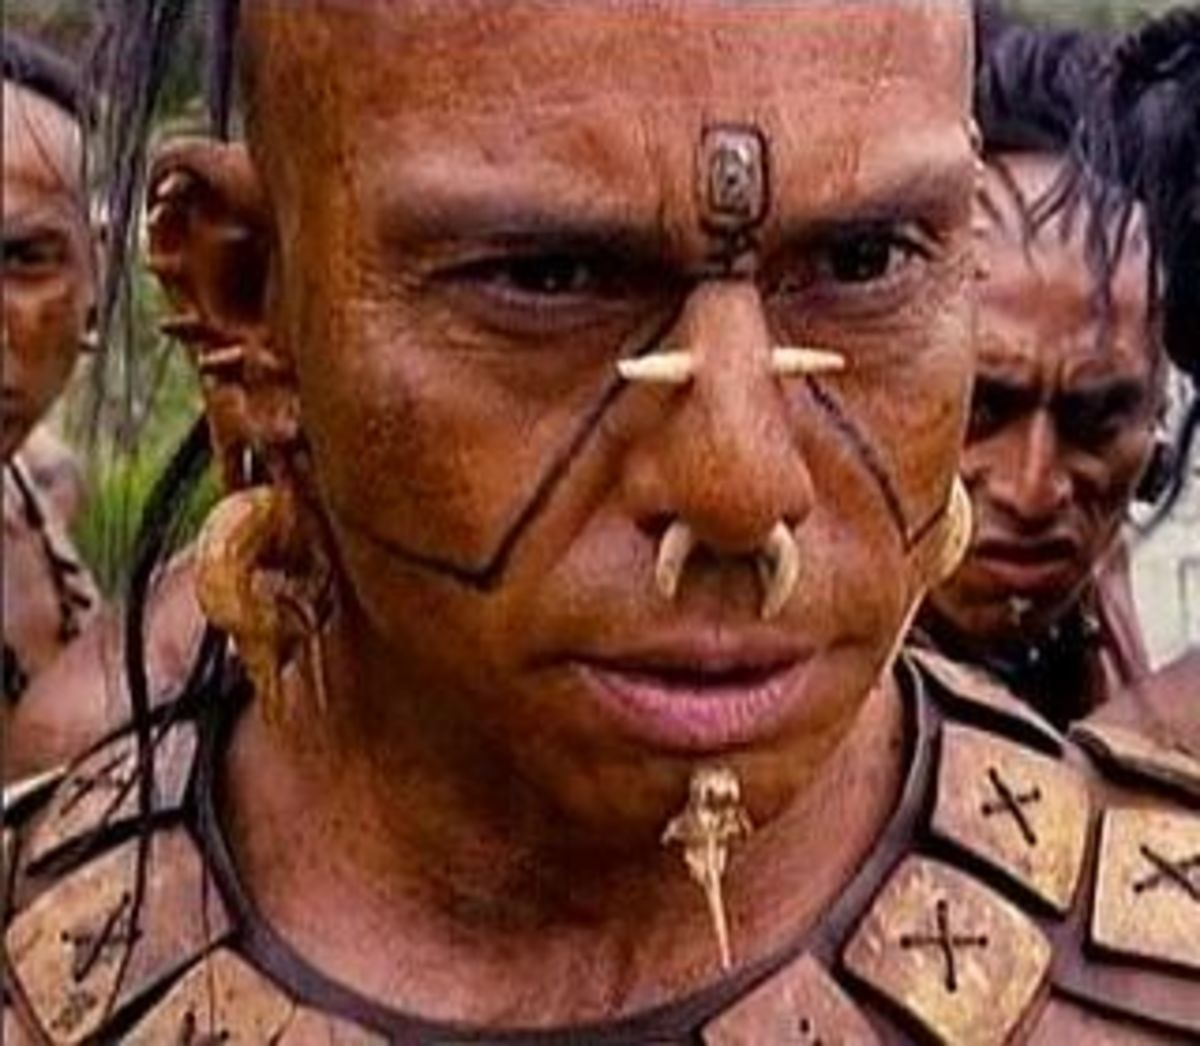 Tribal leader with facial gauges